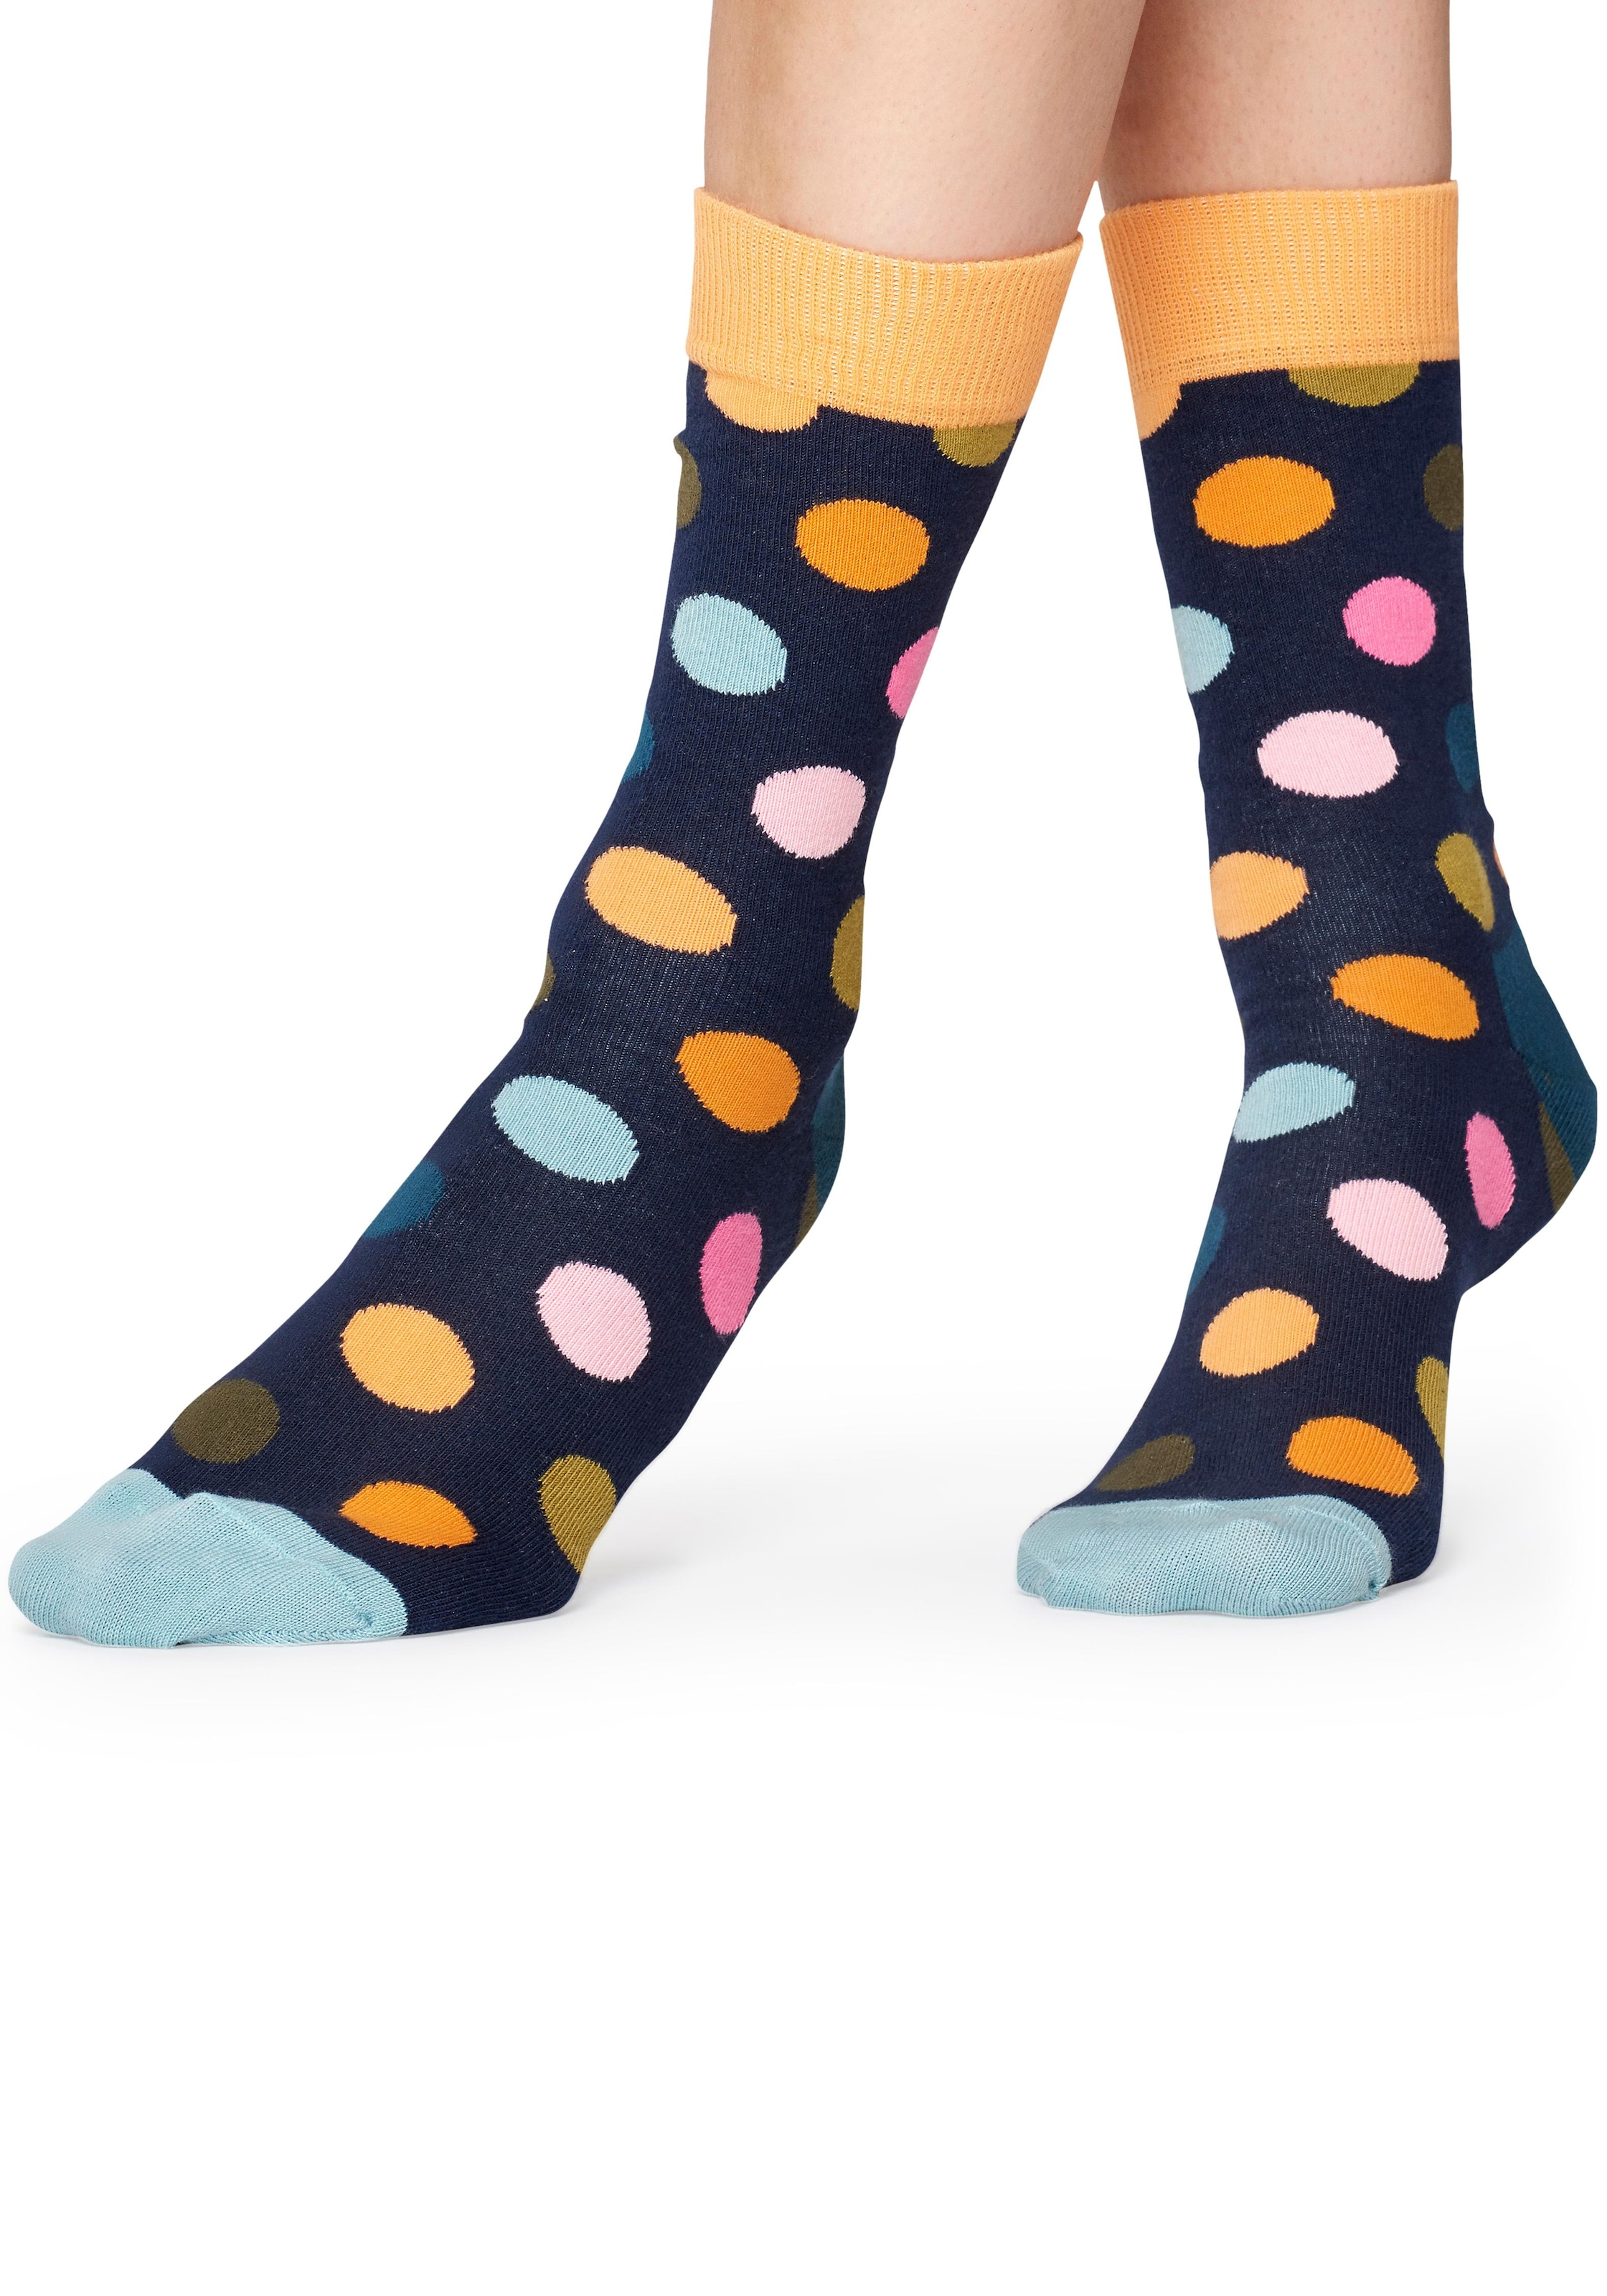 Image of Happy Socks Socken Big Dots